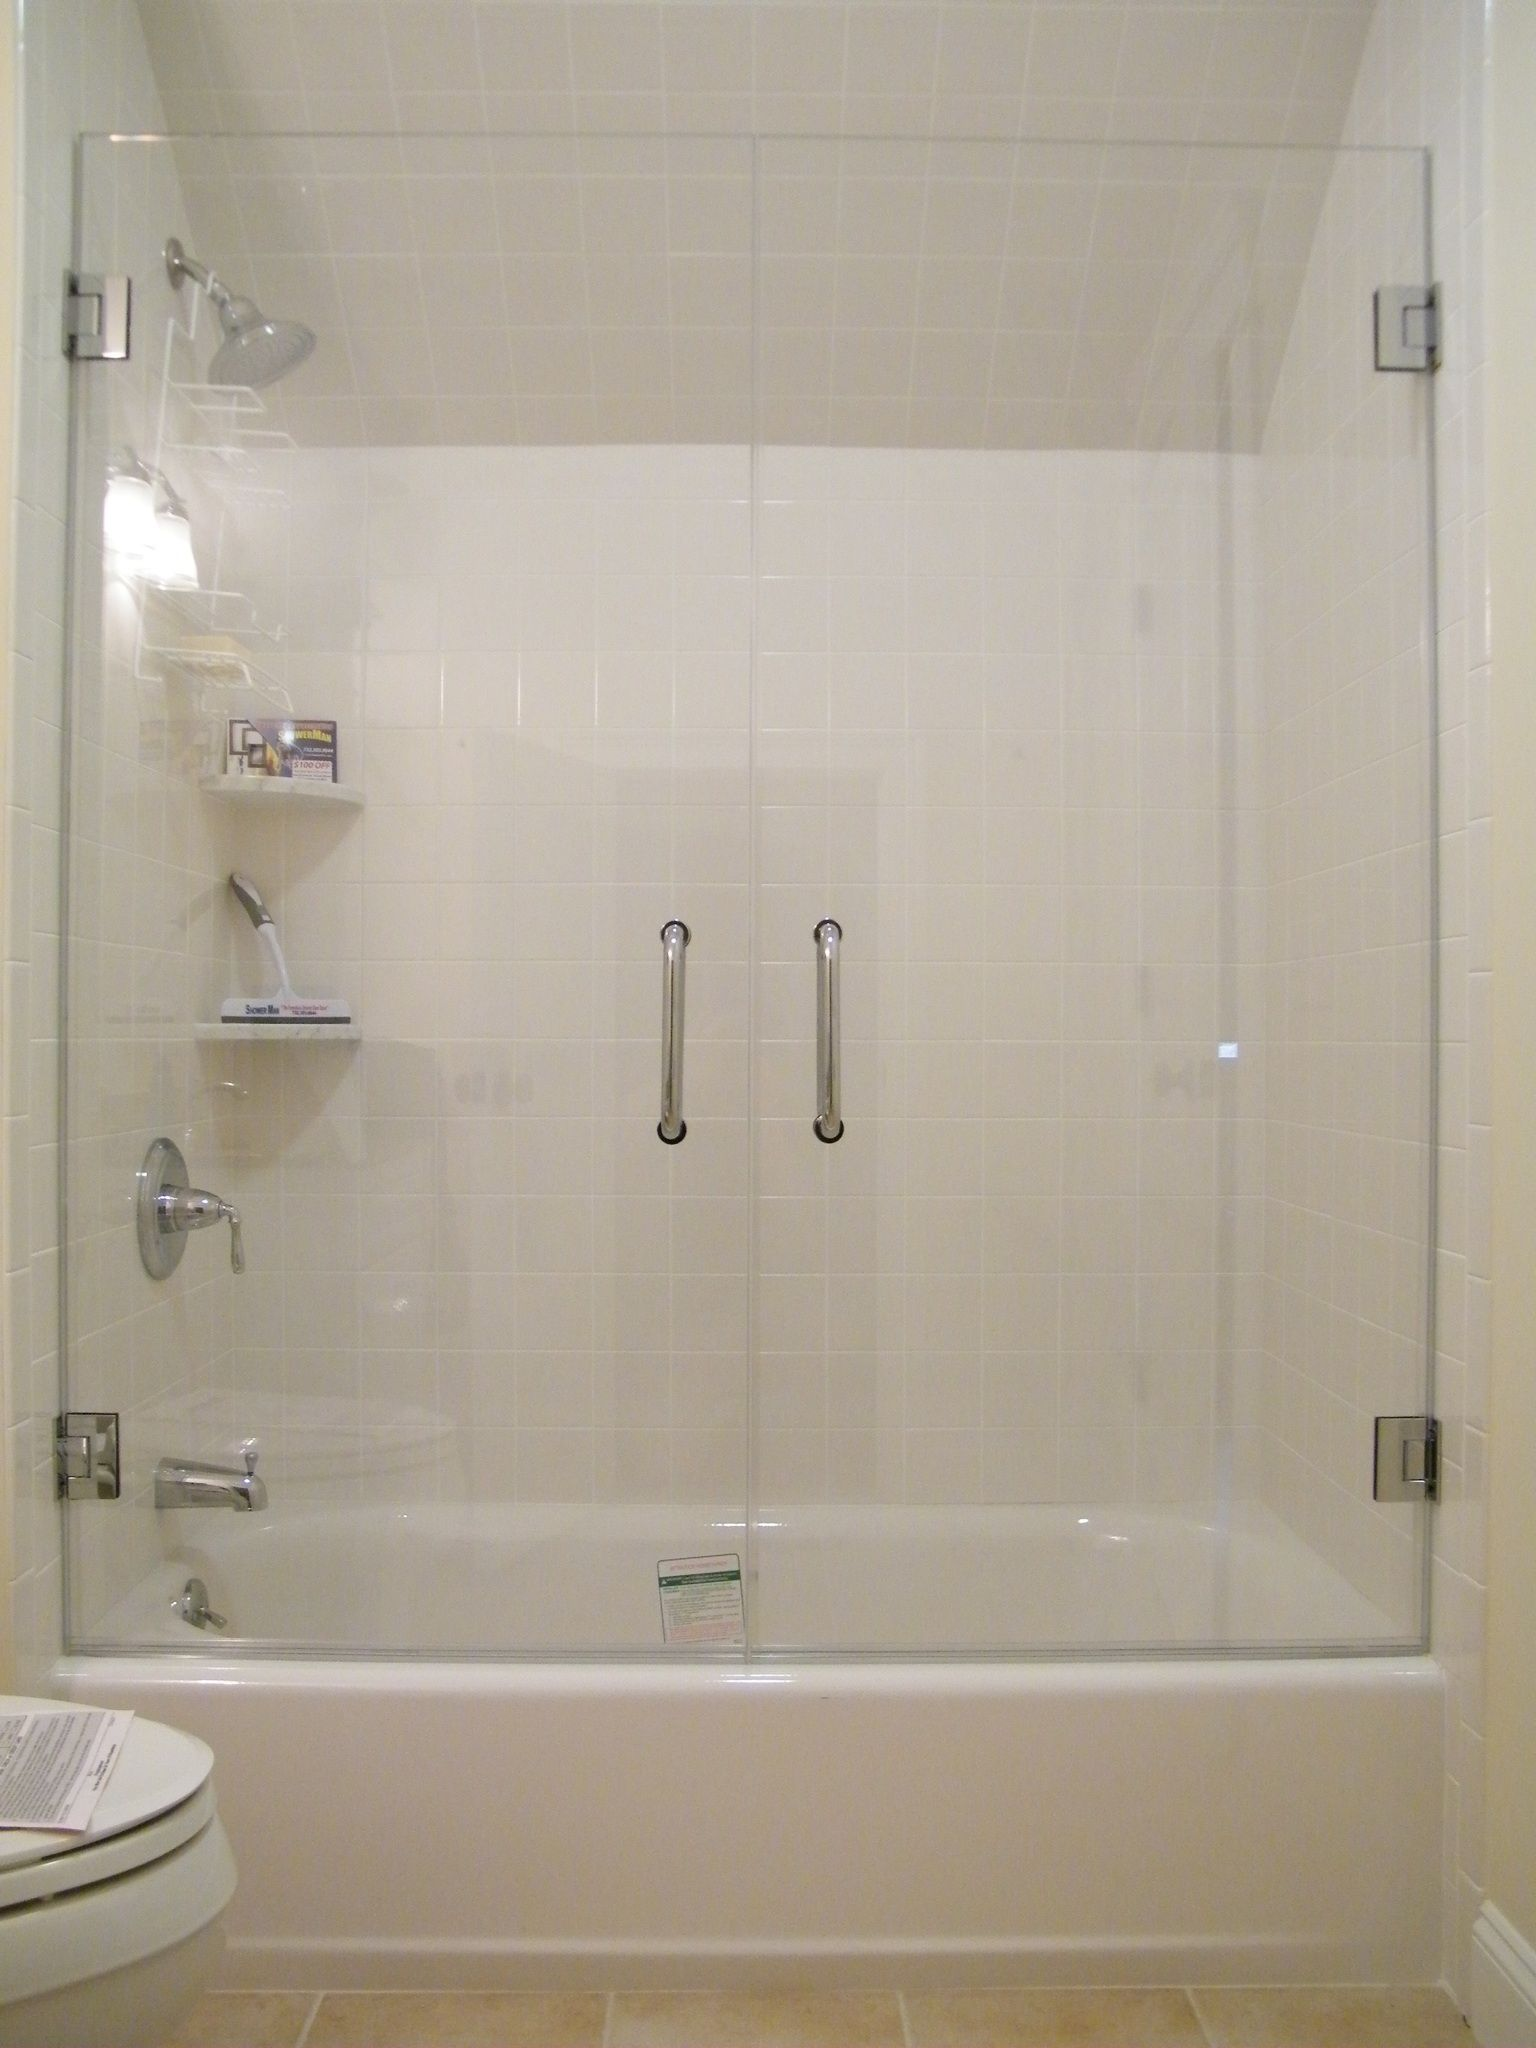 Frameless glass tub enclosure framless glass doors on your bath tub can be designed and installed as an alternative to conventional sliding doors with